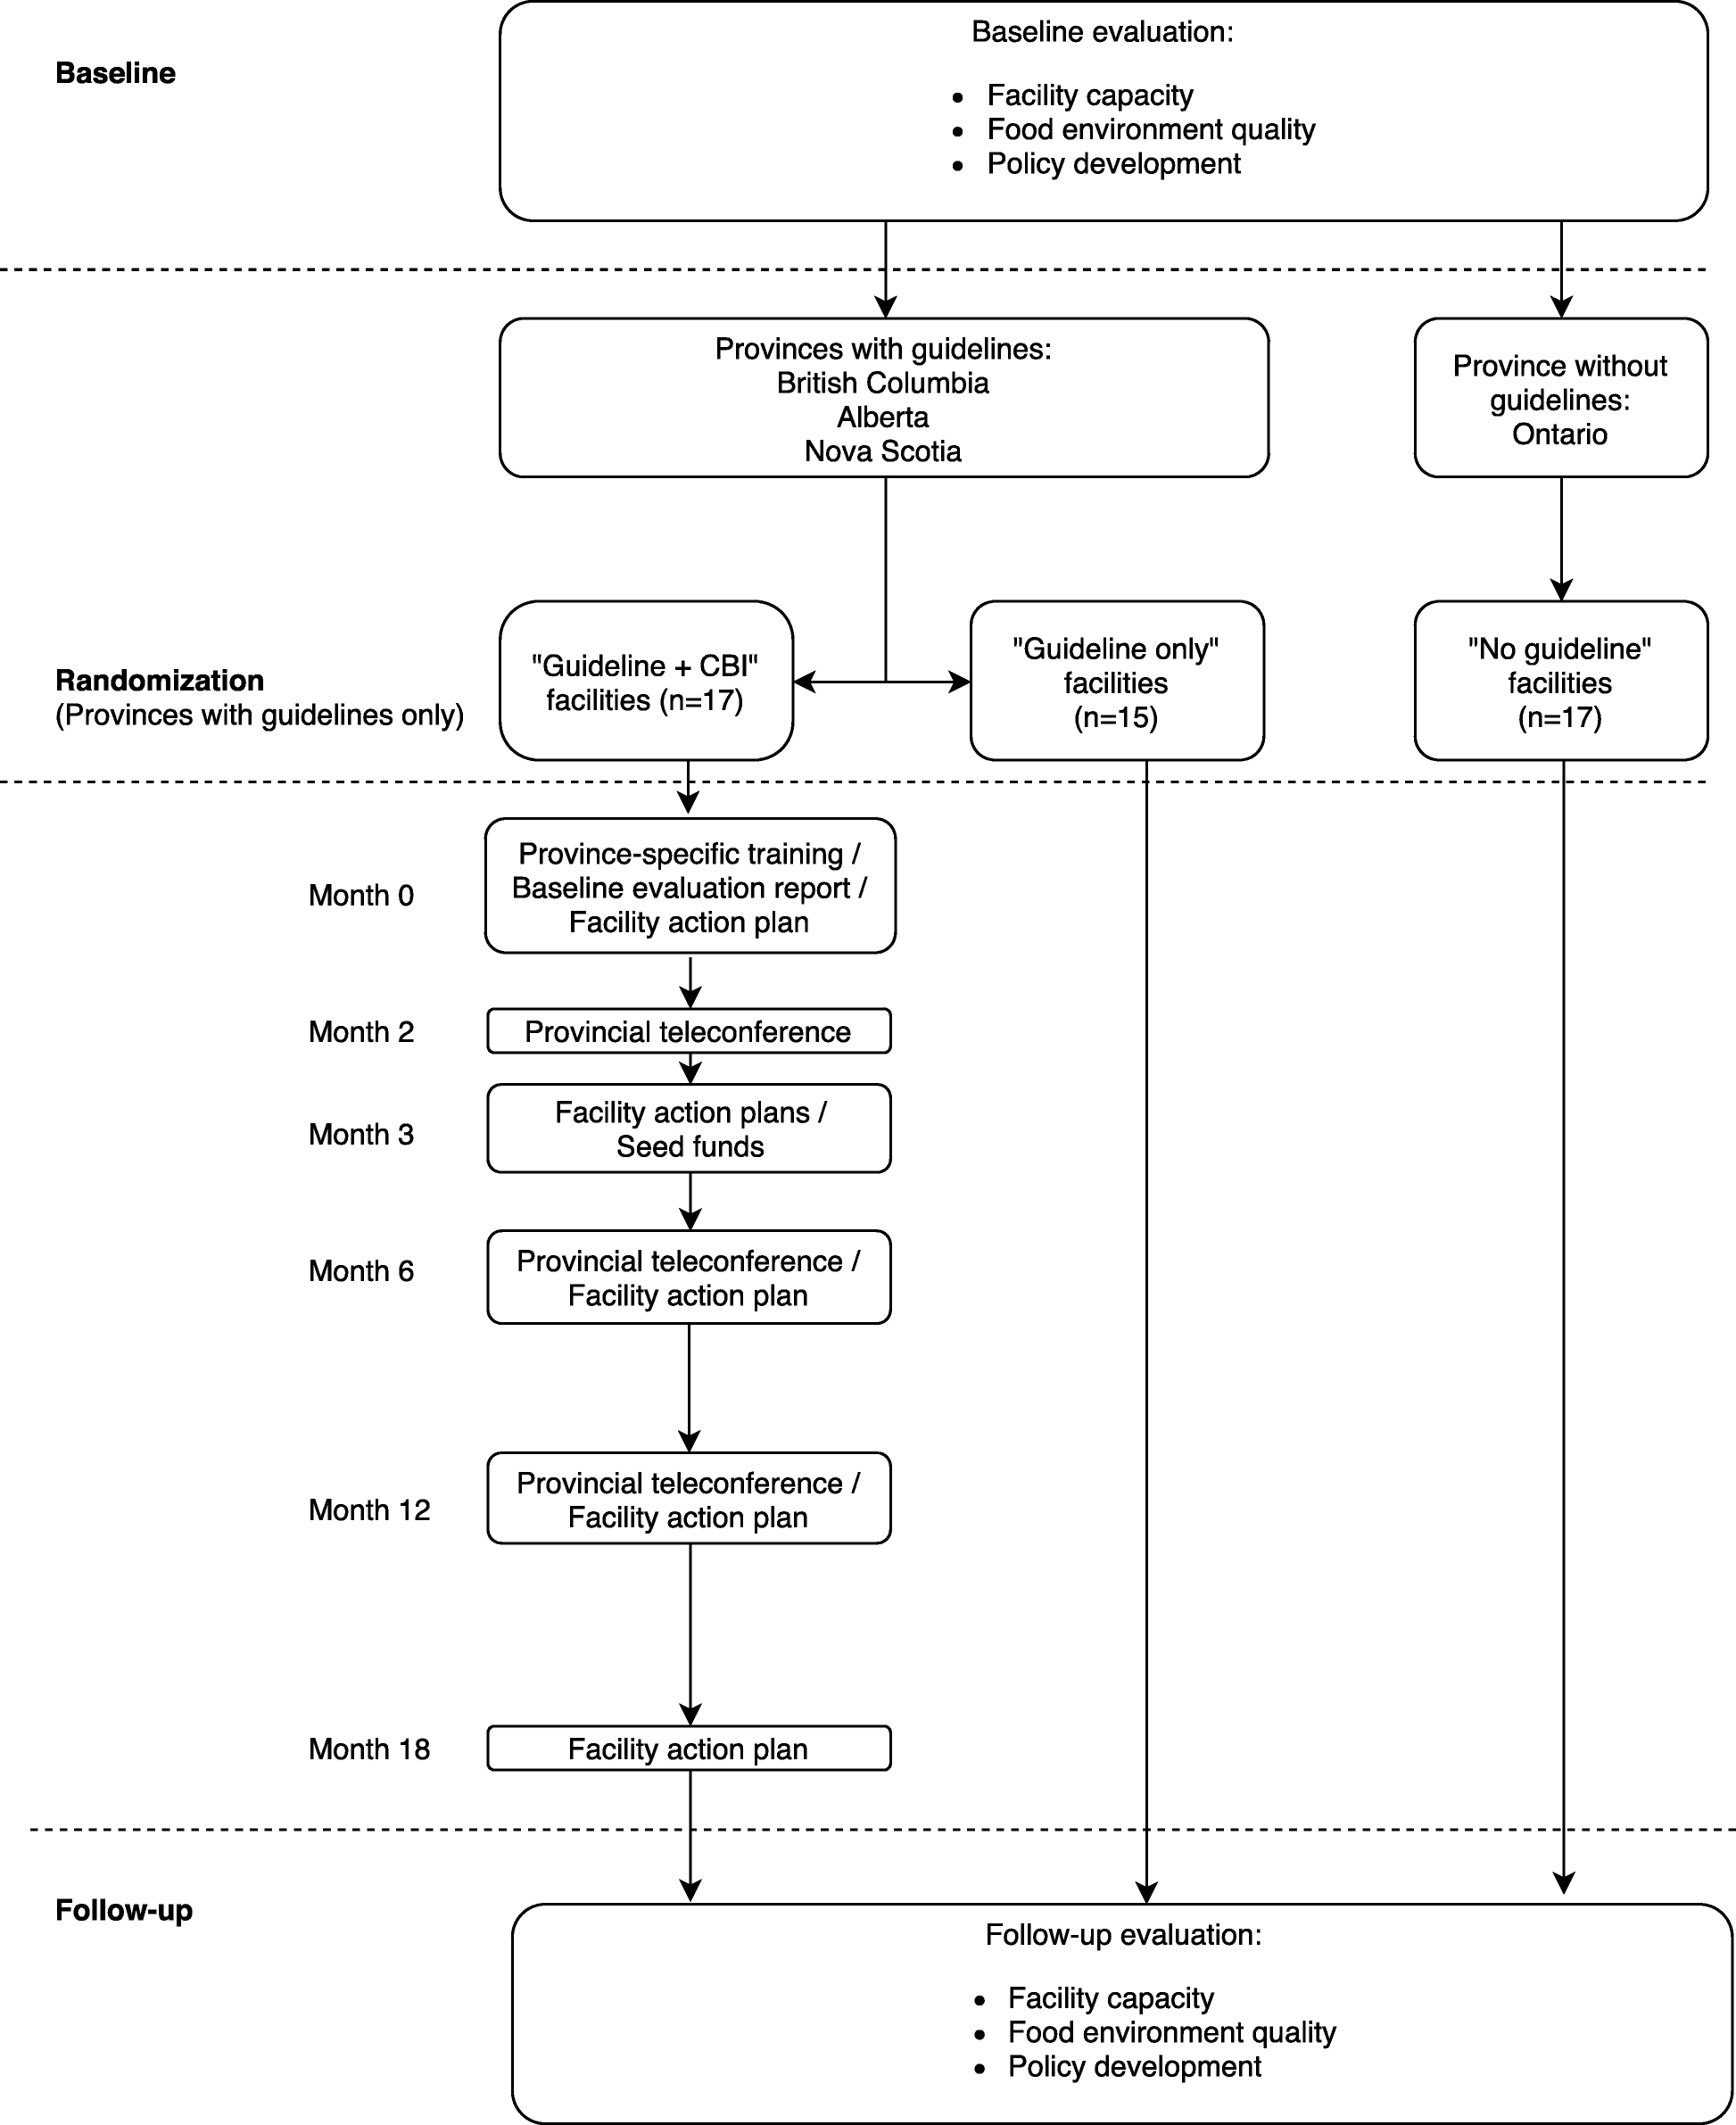 Eat, play, live: a randomized controlled trial within a